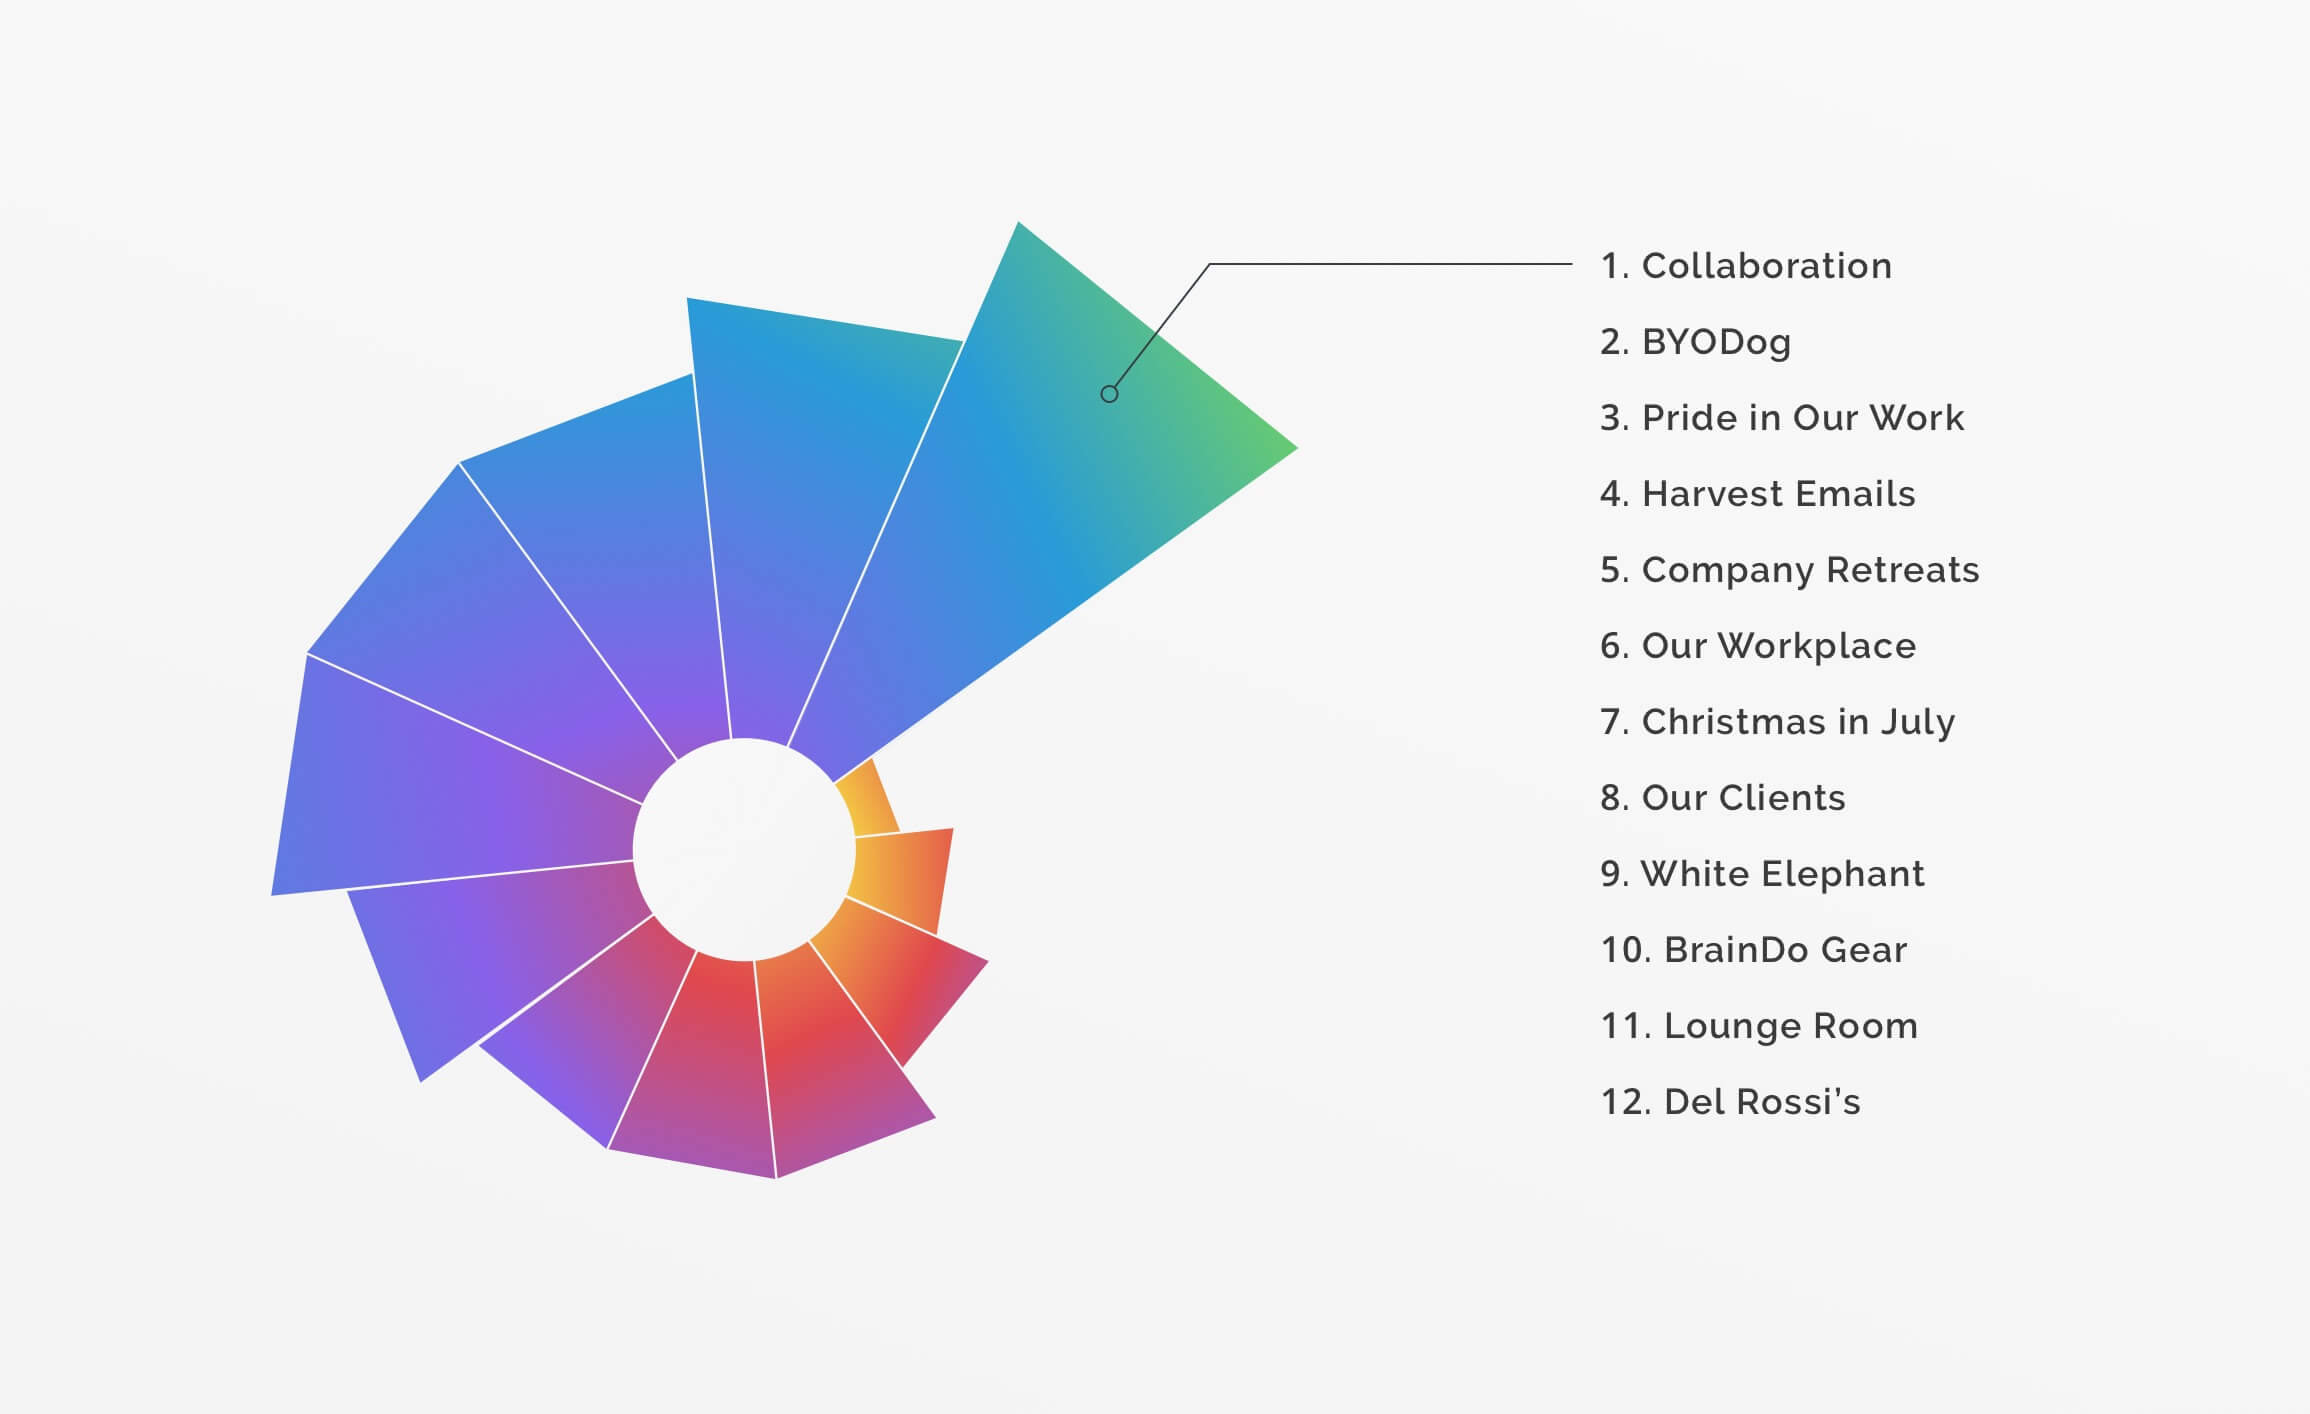 infographic listing work favorites, listed below